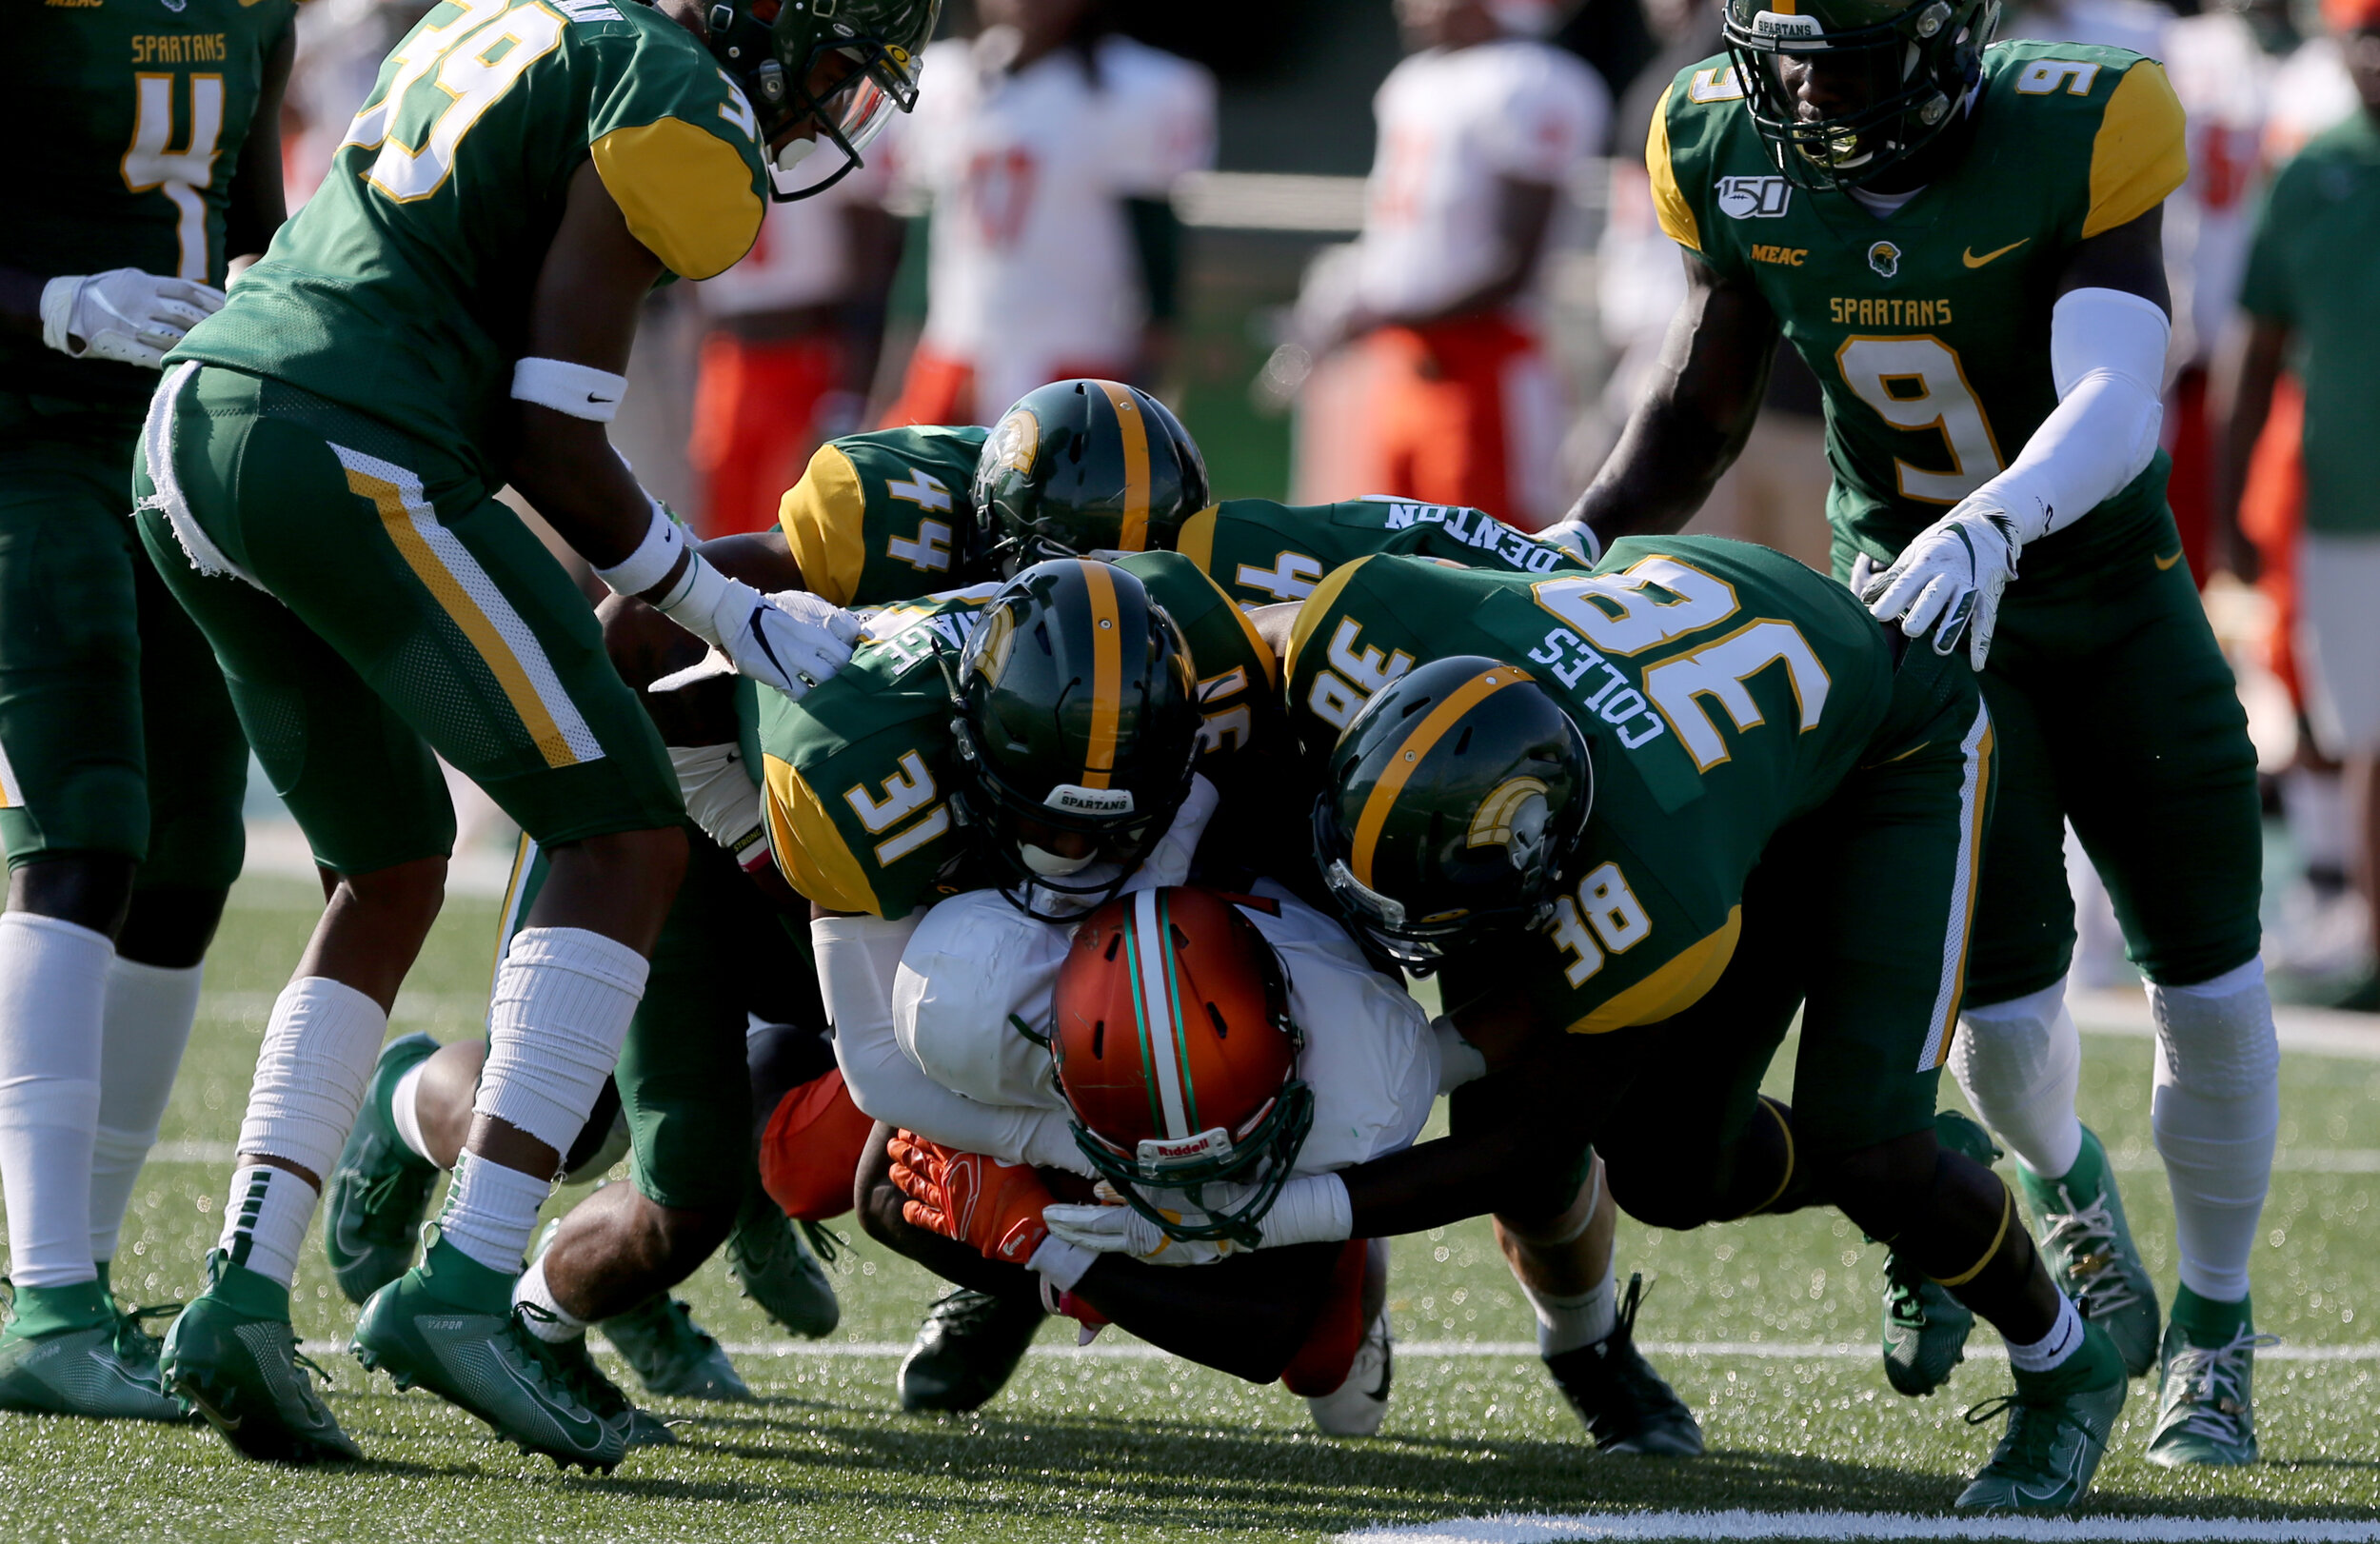 Norfolk State defenders Brandon Savage (31) and Devyn Coles (38) stuff Florida A&M's George Webb during third quarter action of the Spartans' 28-30 loss, Saturday, September 28, 2019 at Dick Price Stadium in Norfolk.